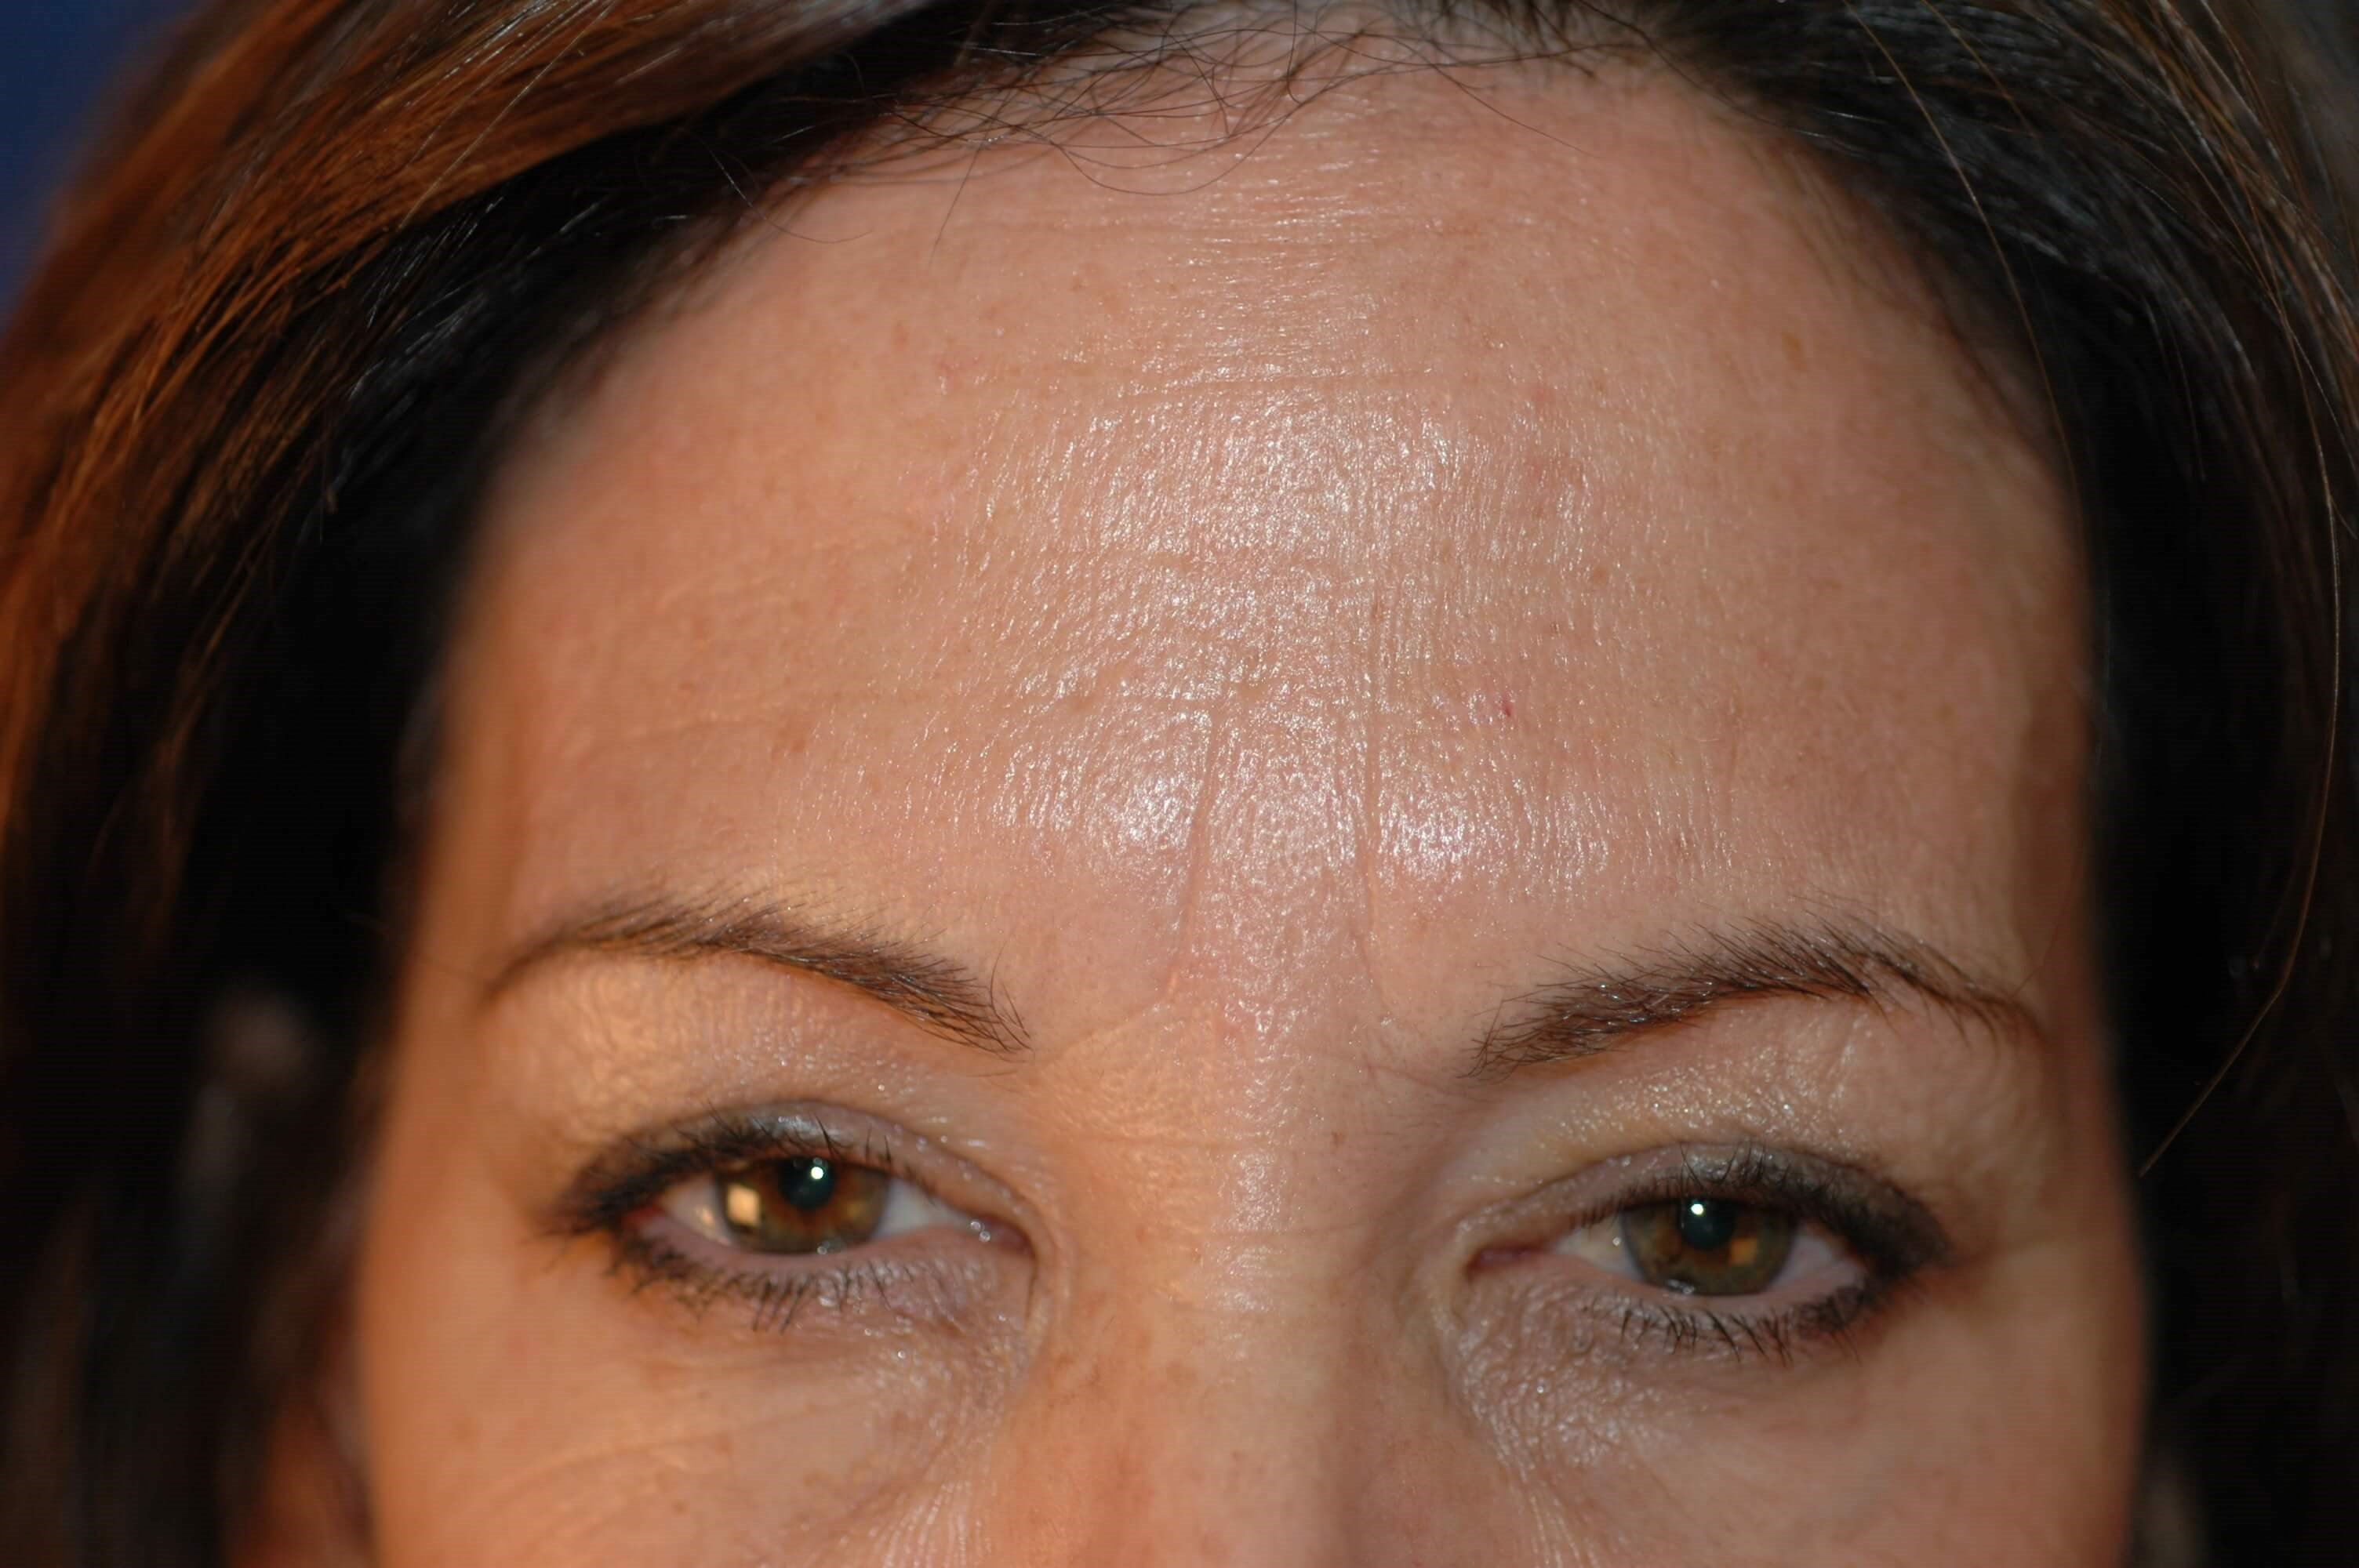 Newport Beach Botox After Front View